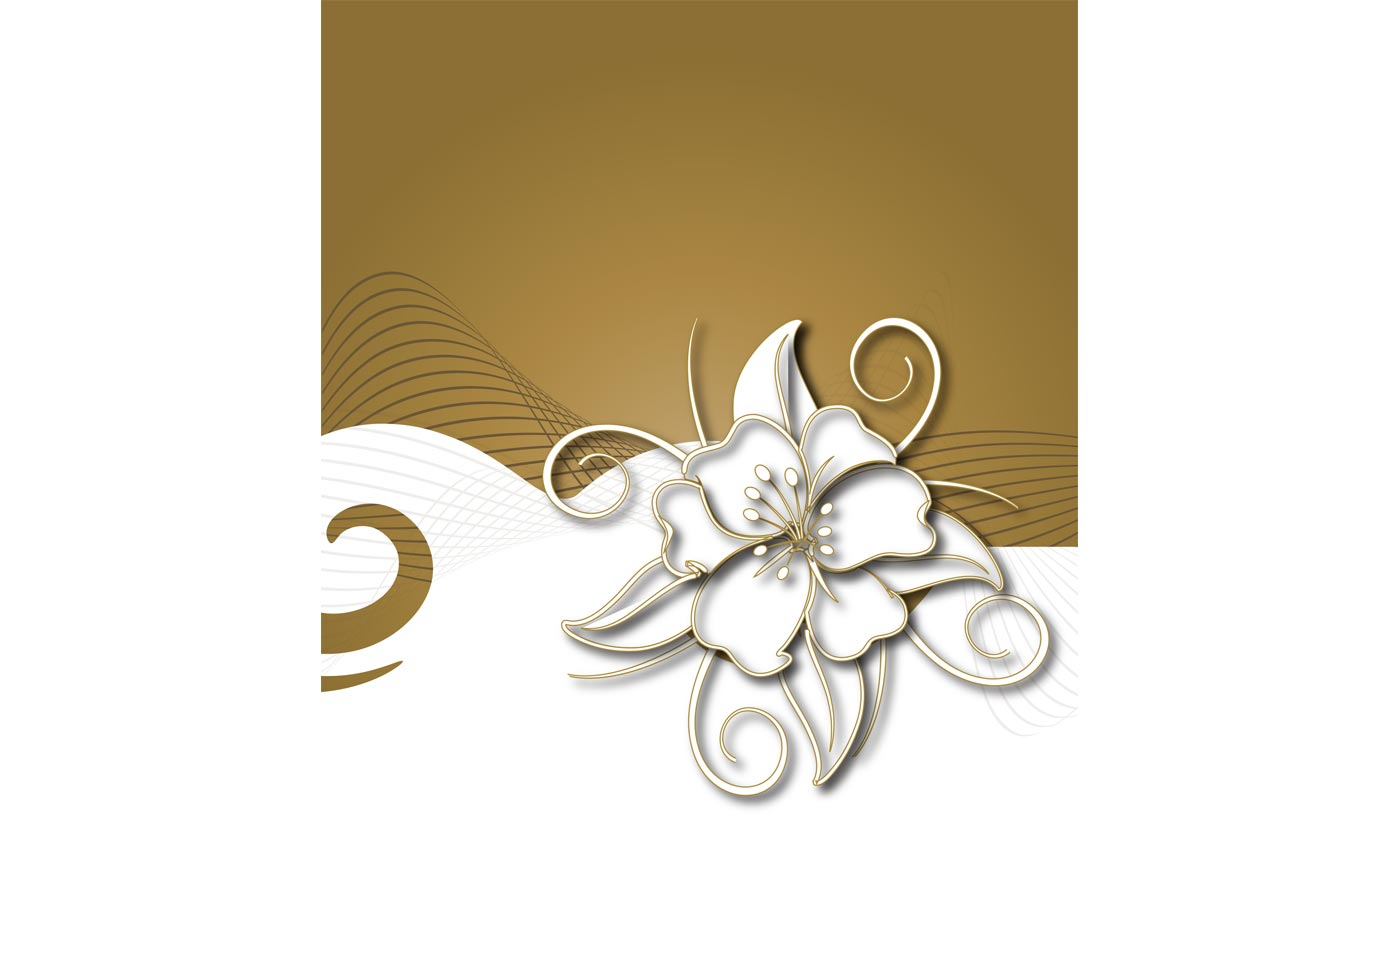 Floral Vector with Flowing Background | Free Vector Art at ...